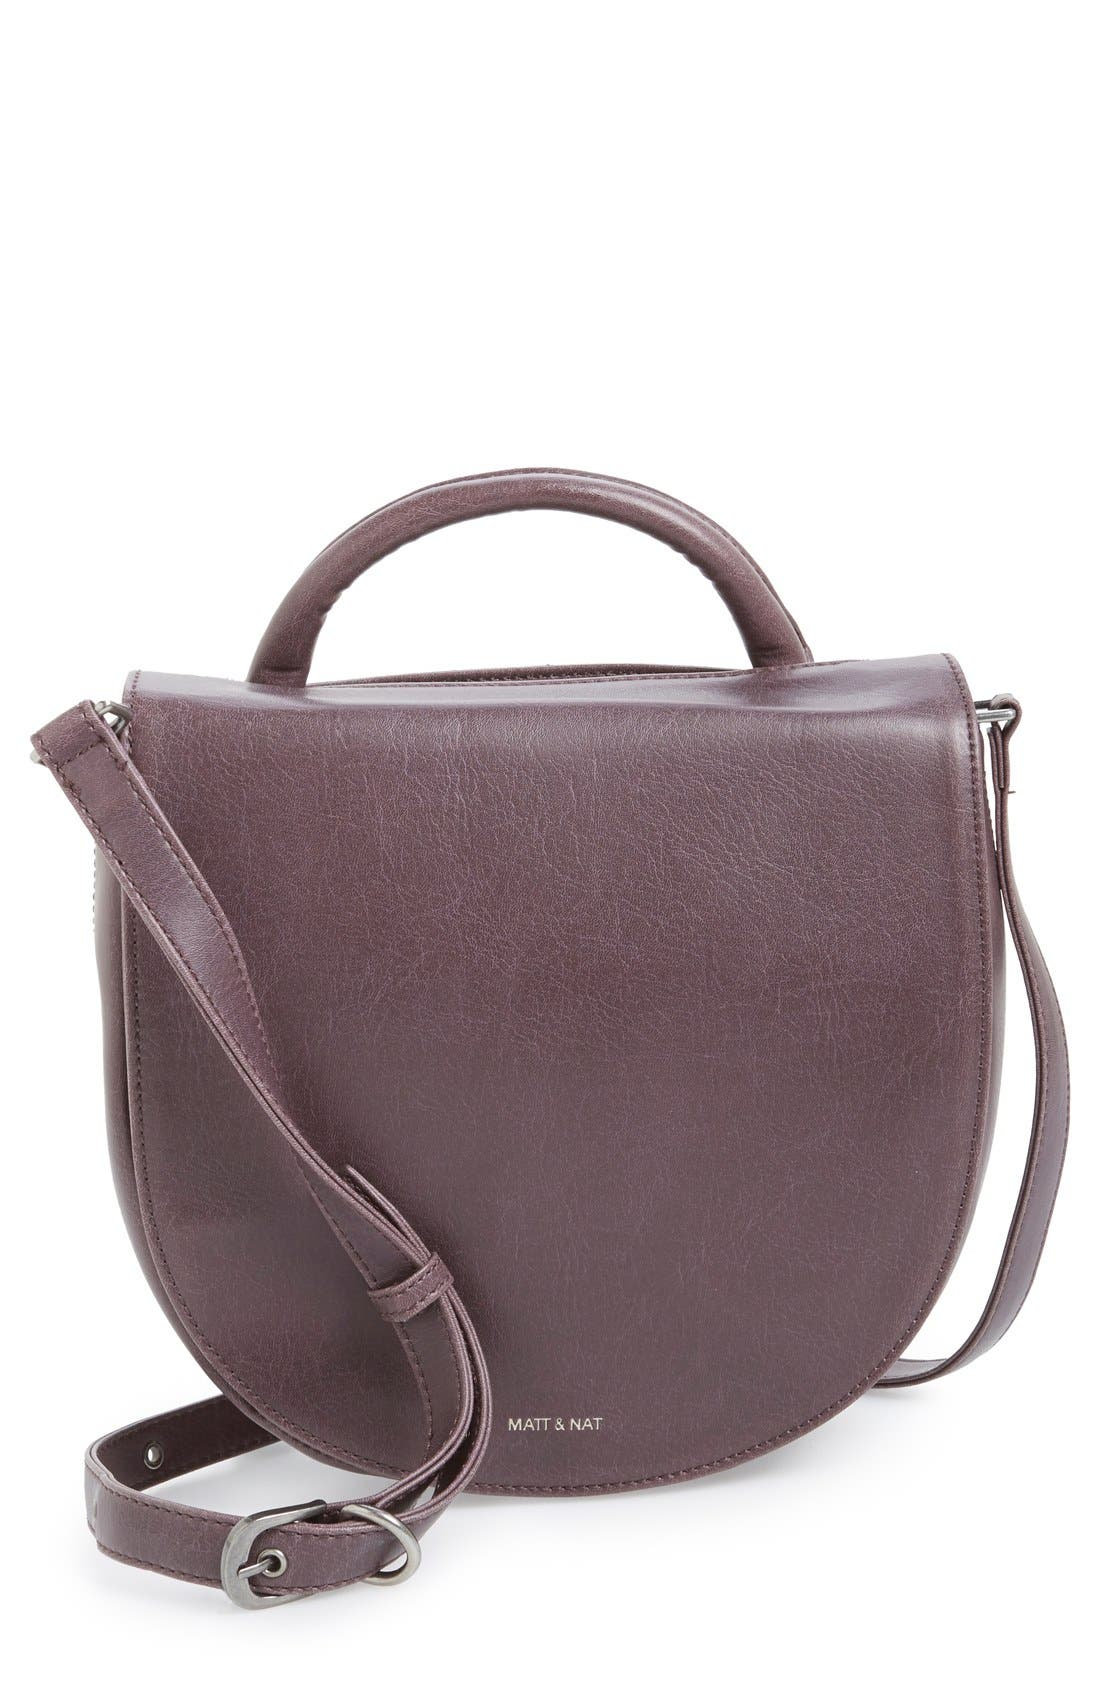 Main Image - Matt & Nat 'Parabole' Vegan Leather Crossbody Bag